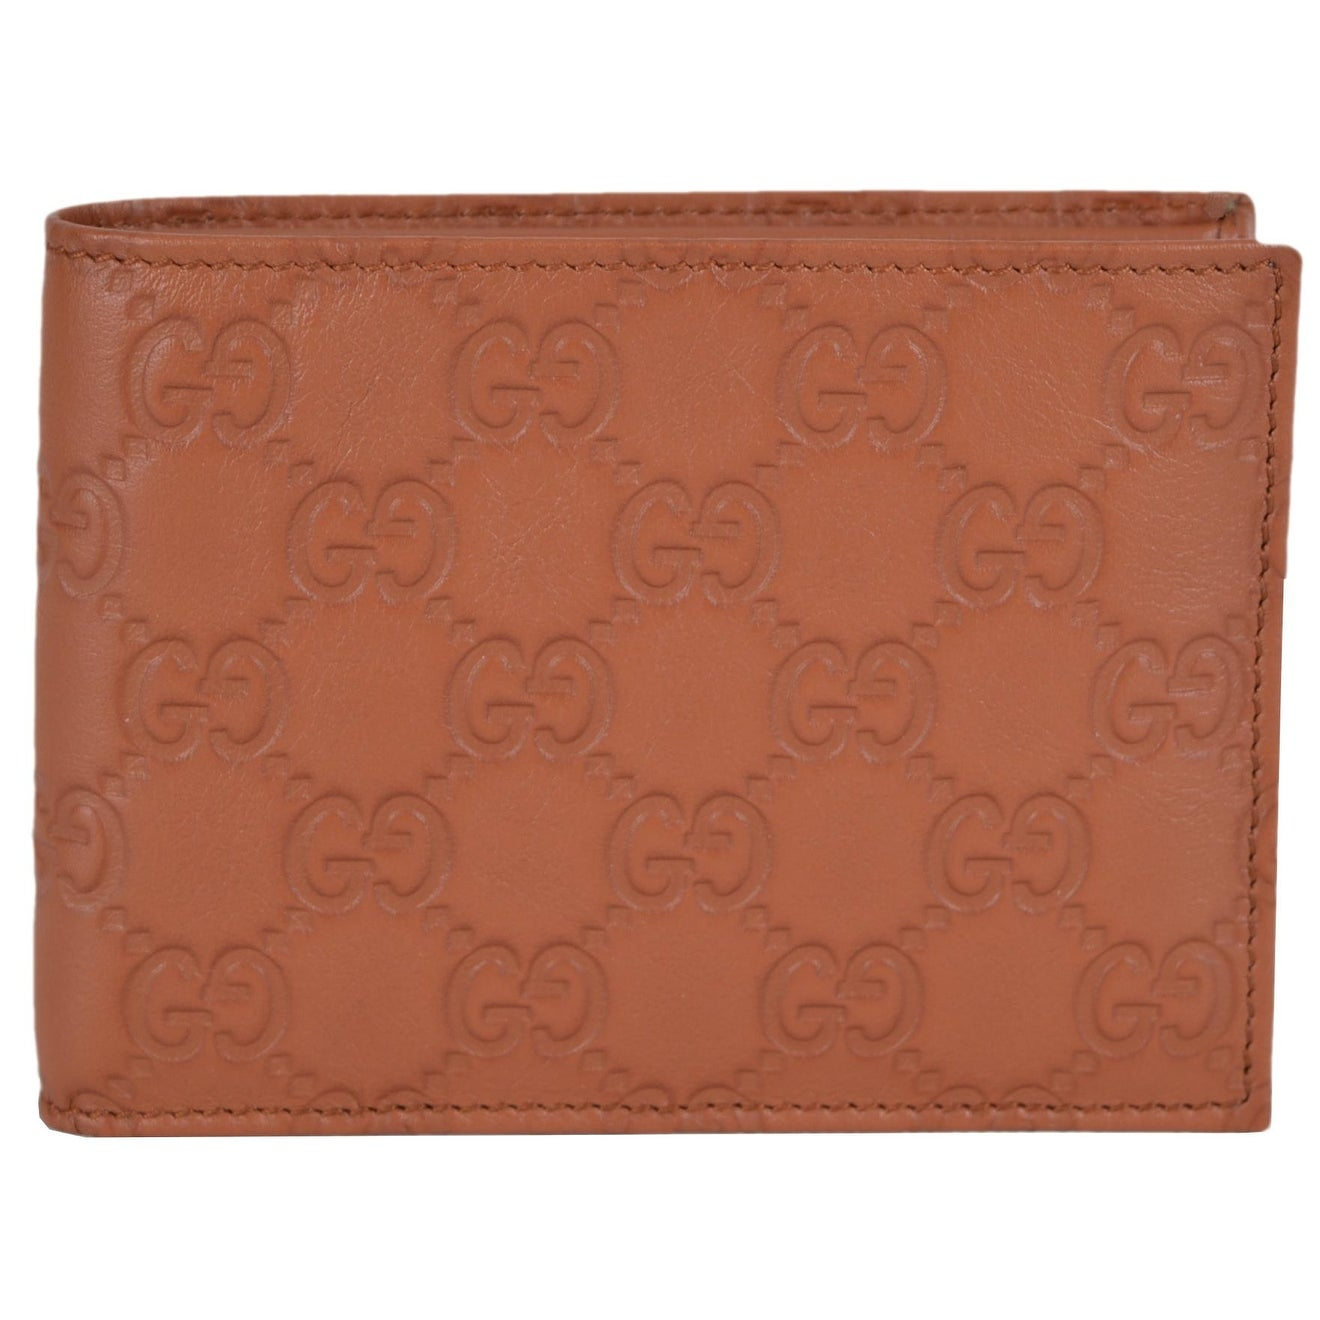 Gucci 278596 Men's Saffron Tan Leather GG Guccissima Bifold Wallet - Thumbnail 0